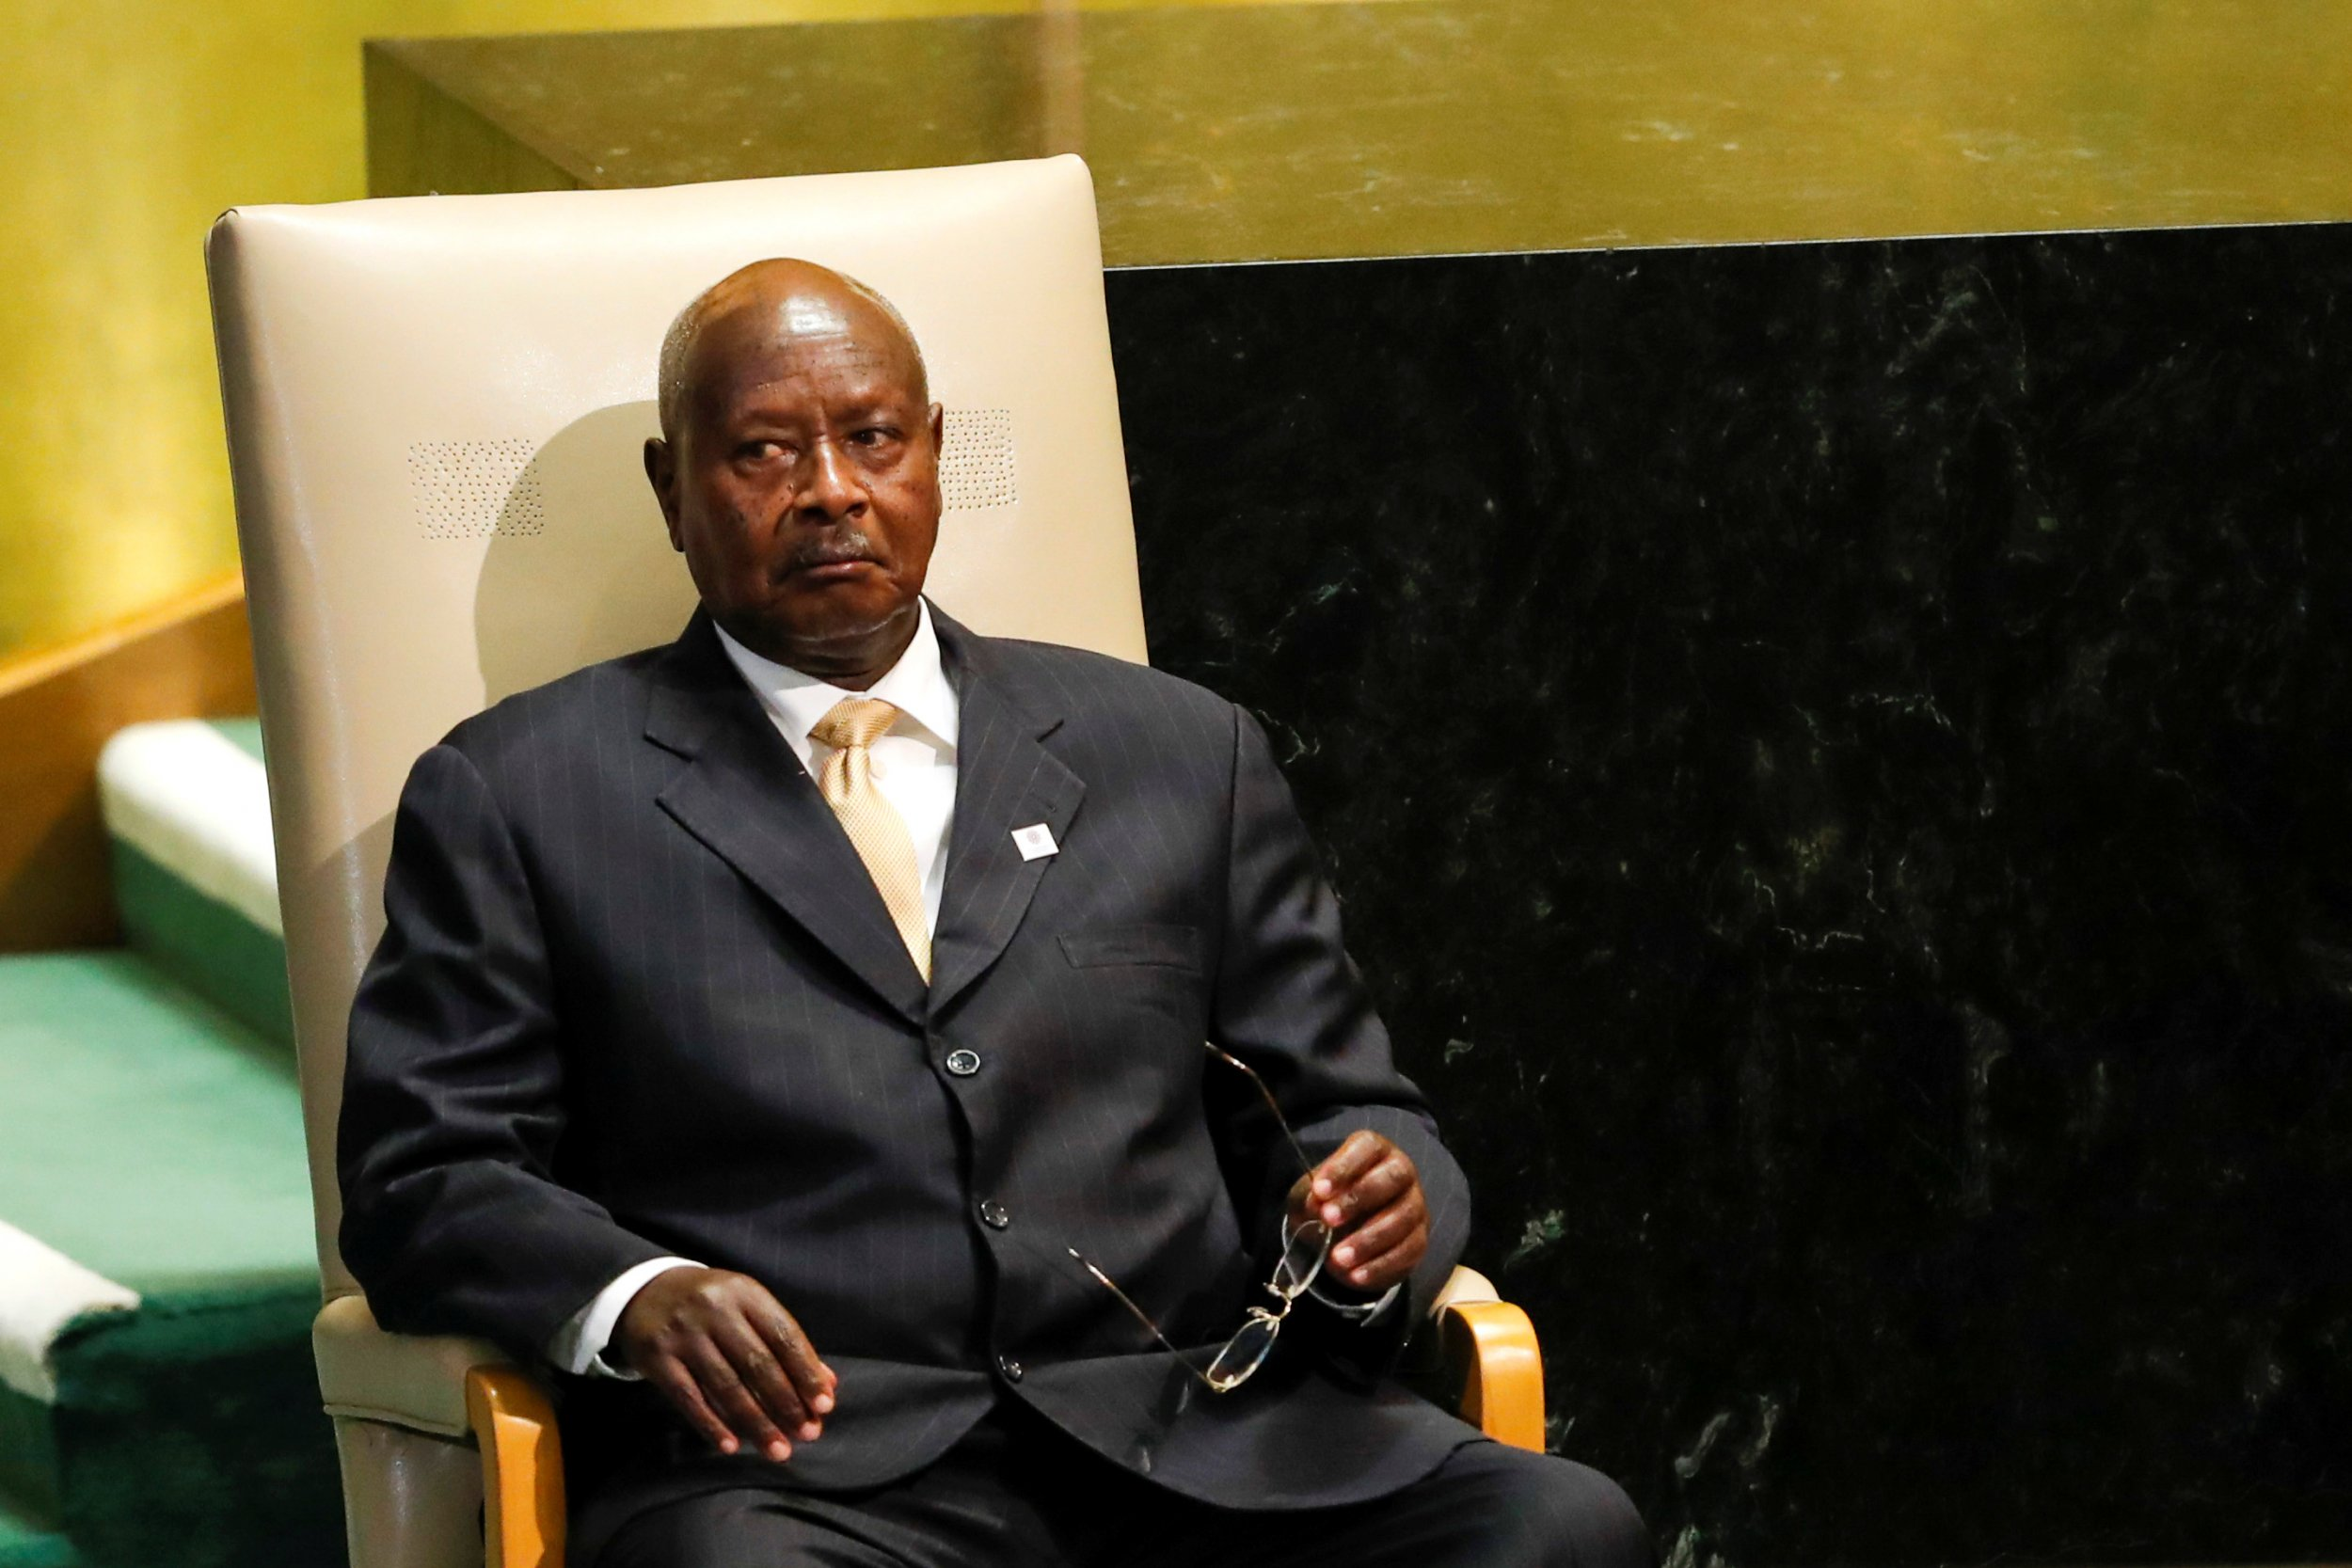 Ugandan President Inaugurates 195 Km Walk To Honor Liberation Fighters